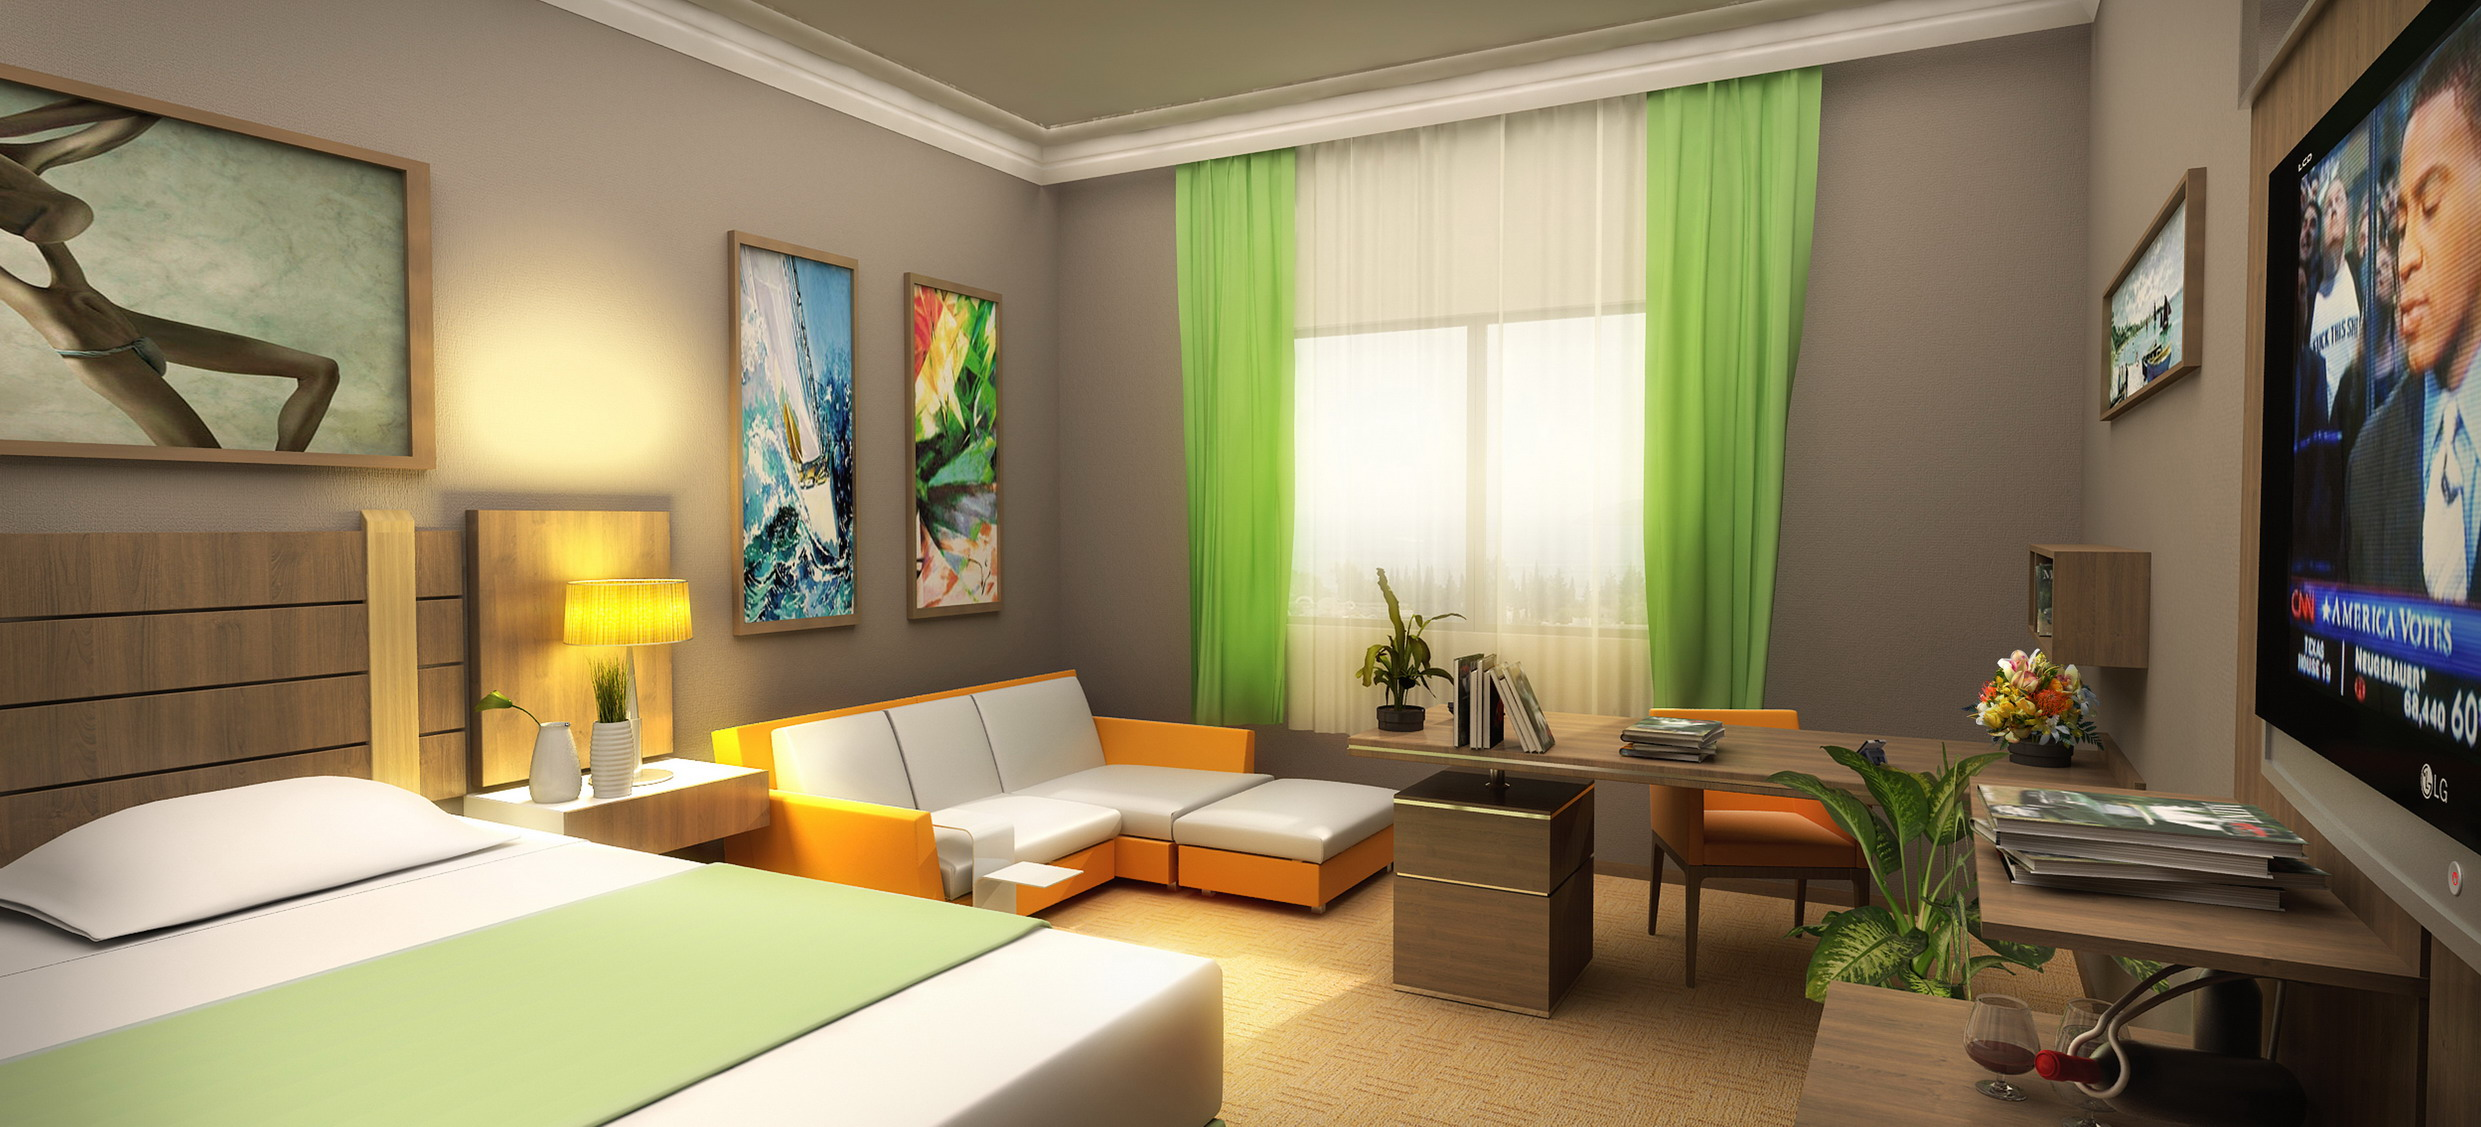 3D hotel room sectional sofa rendering